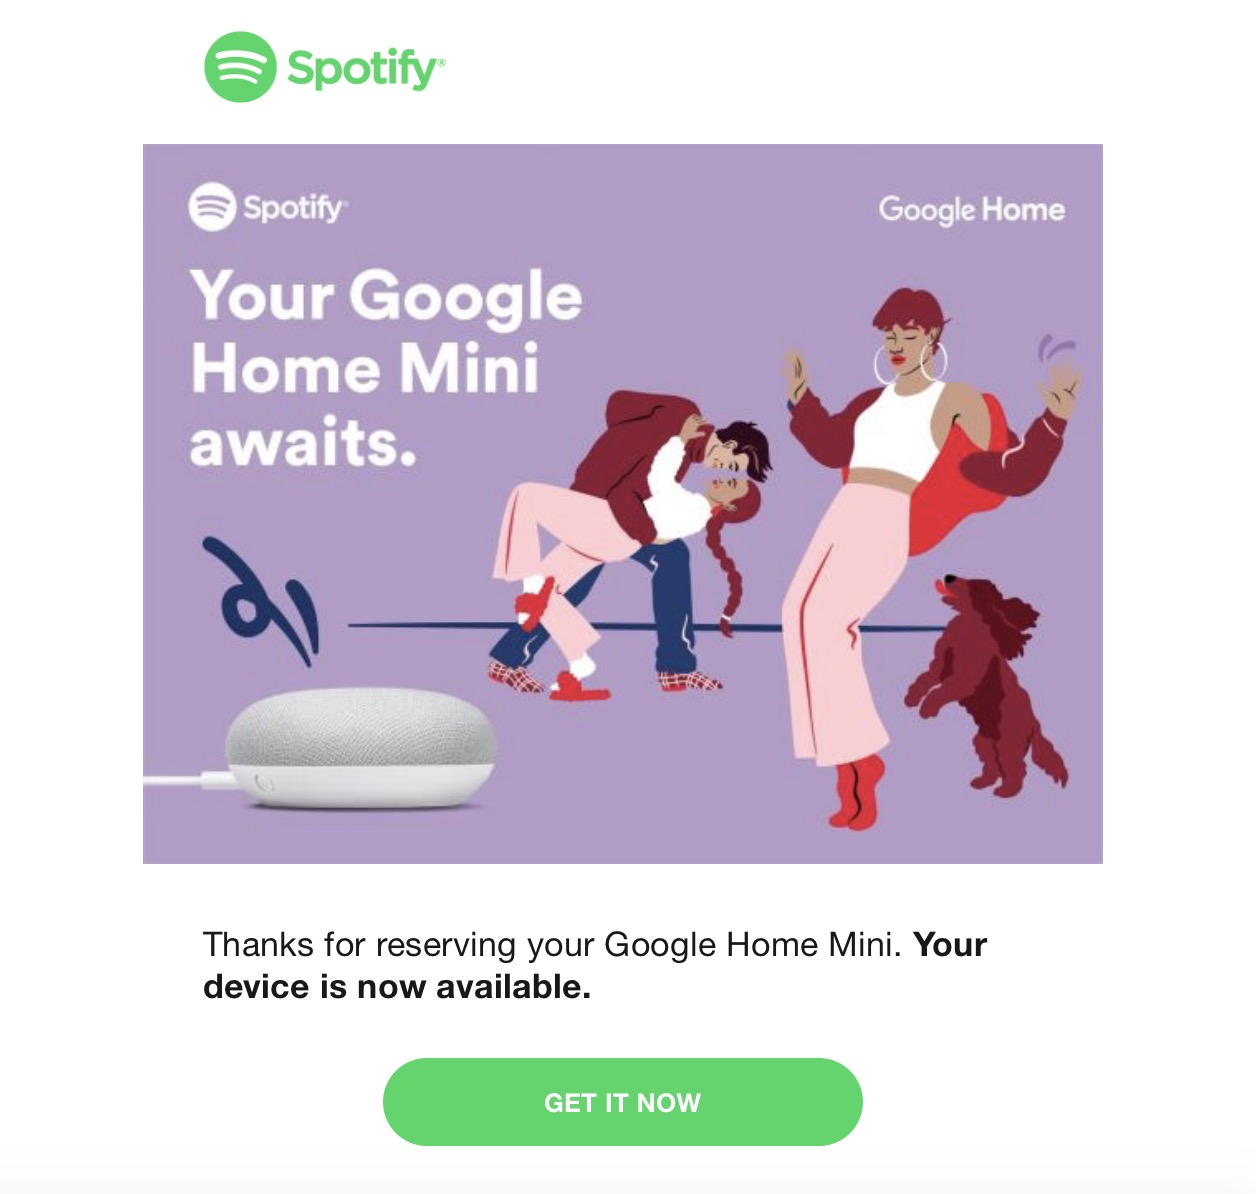 Get a free Google Home Mini when you sign up for Spotify